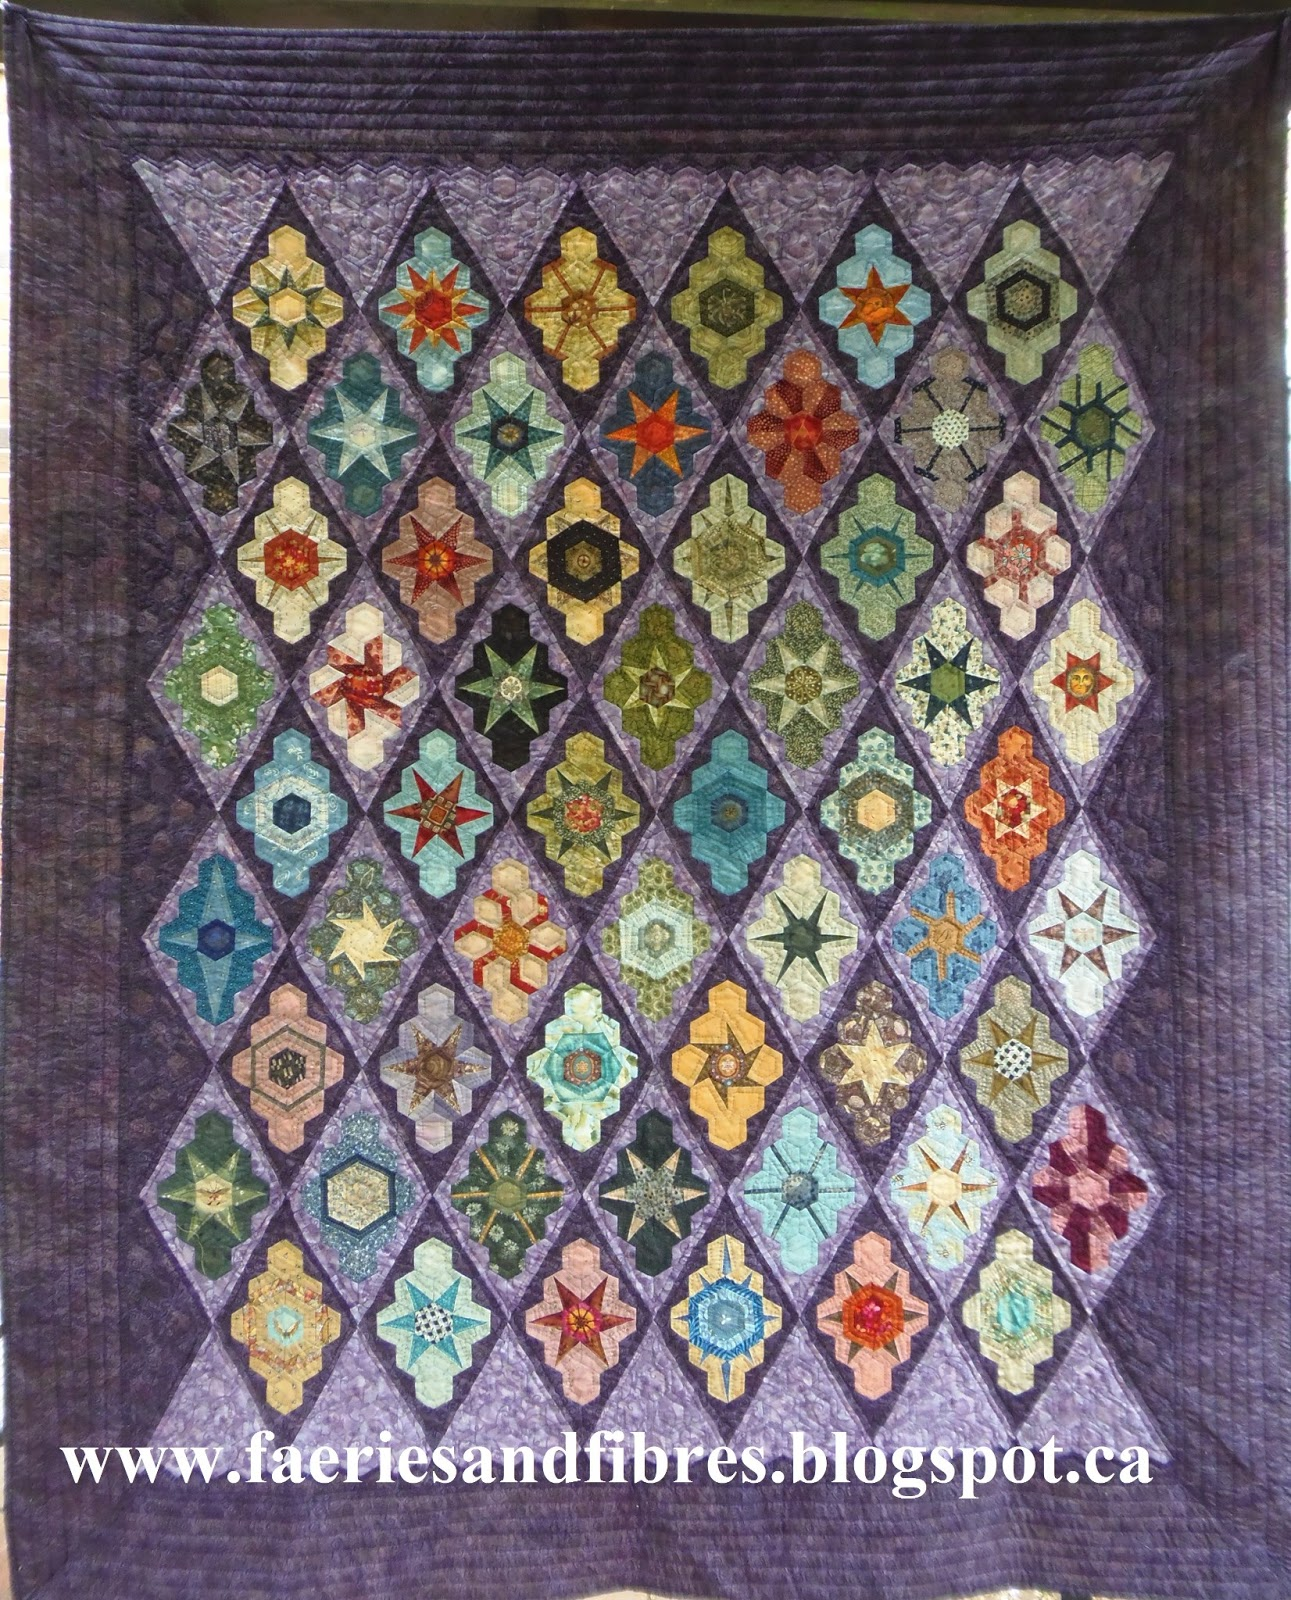 Faeries and Fibres: Cherry Blossom Quilt pattern, hexagon fun and ... : hexagon quilting patterns - Adamdwight.com